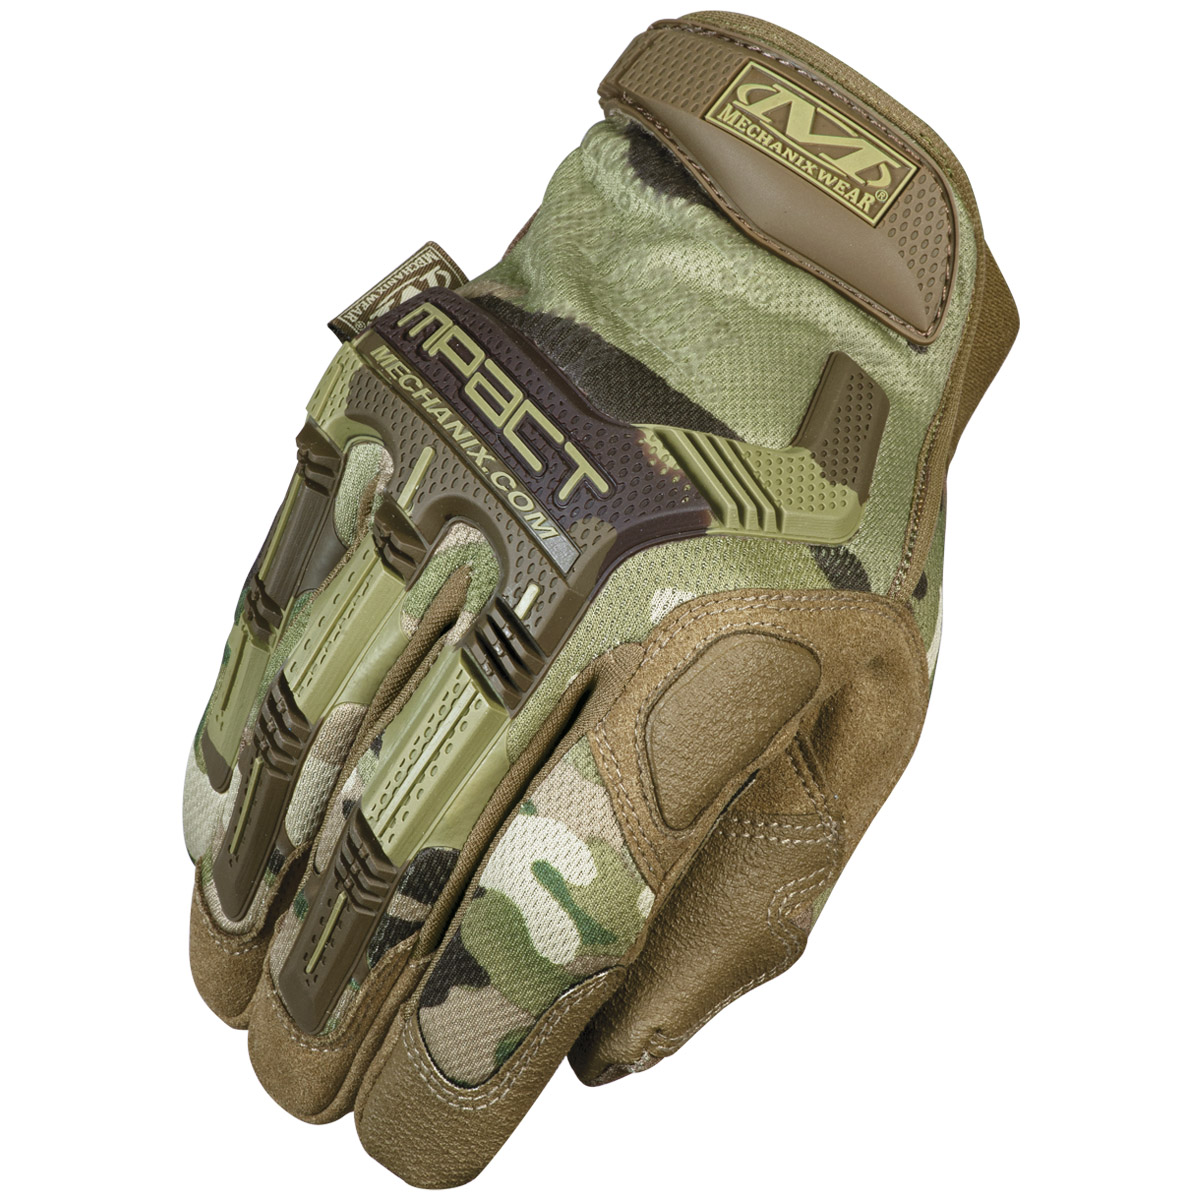 Leather work gloves m pact 2 - Mechanix Wear M Pact Gloves Multicam